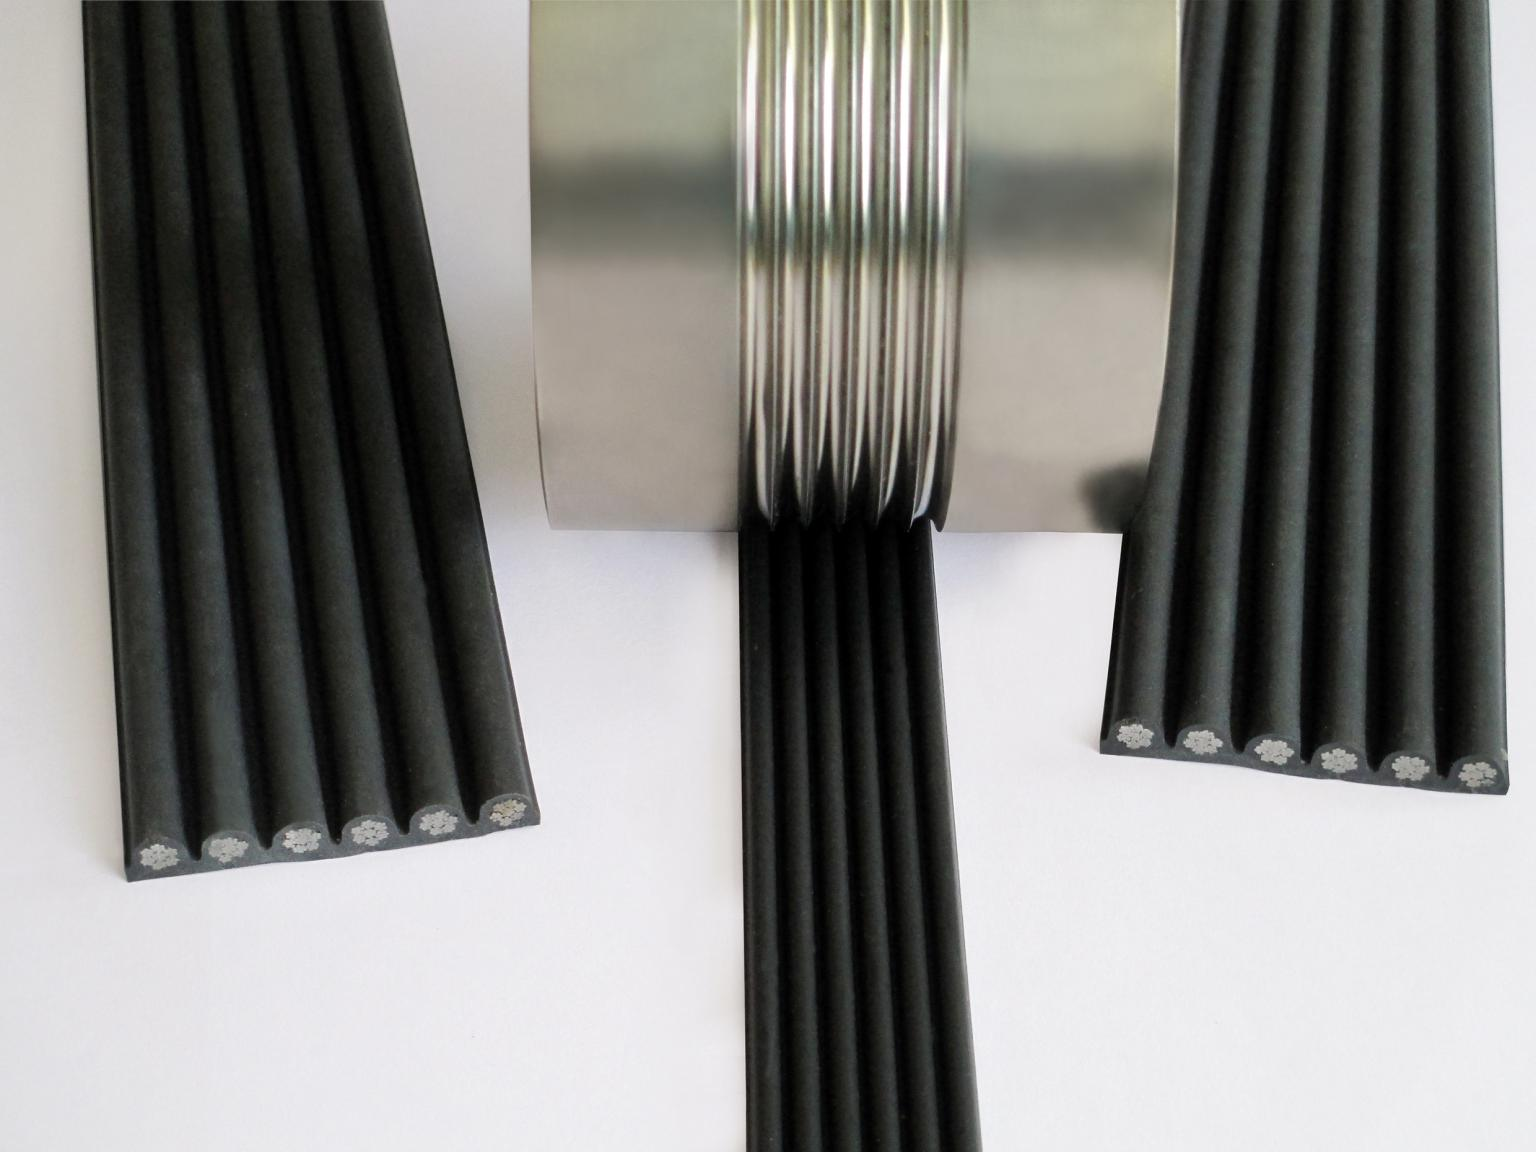 The CONTI POLYROPE composite cord consists of steel cords embedded in a polyurethane coating. As a means of suspension for elevators, it offers numerous advantages over conventional steel cords. Photo: ContiTech